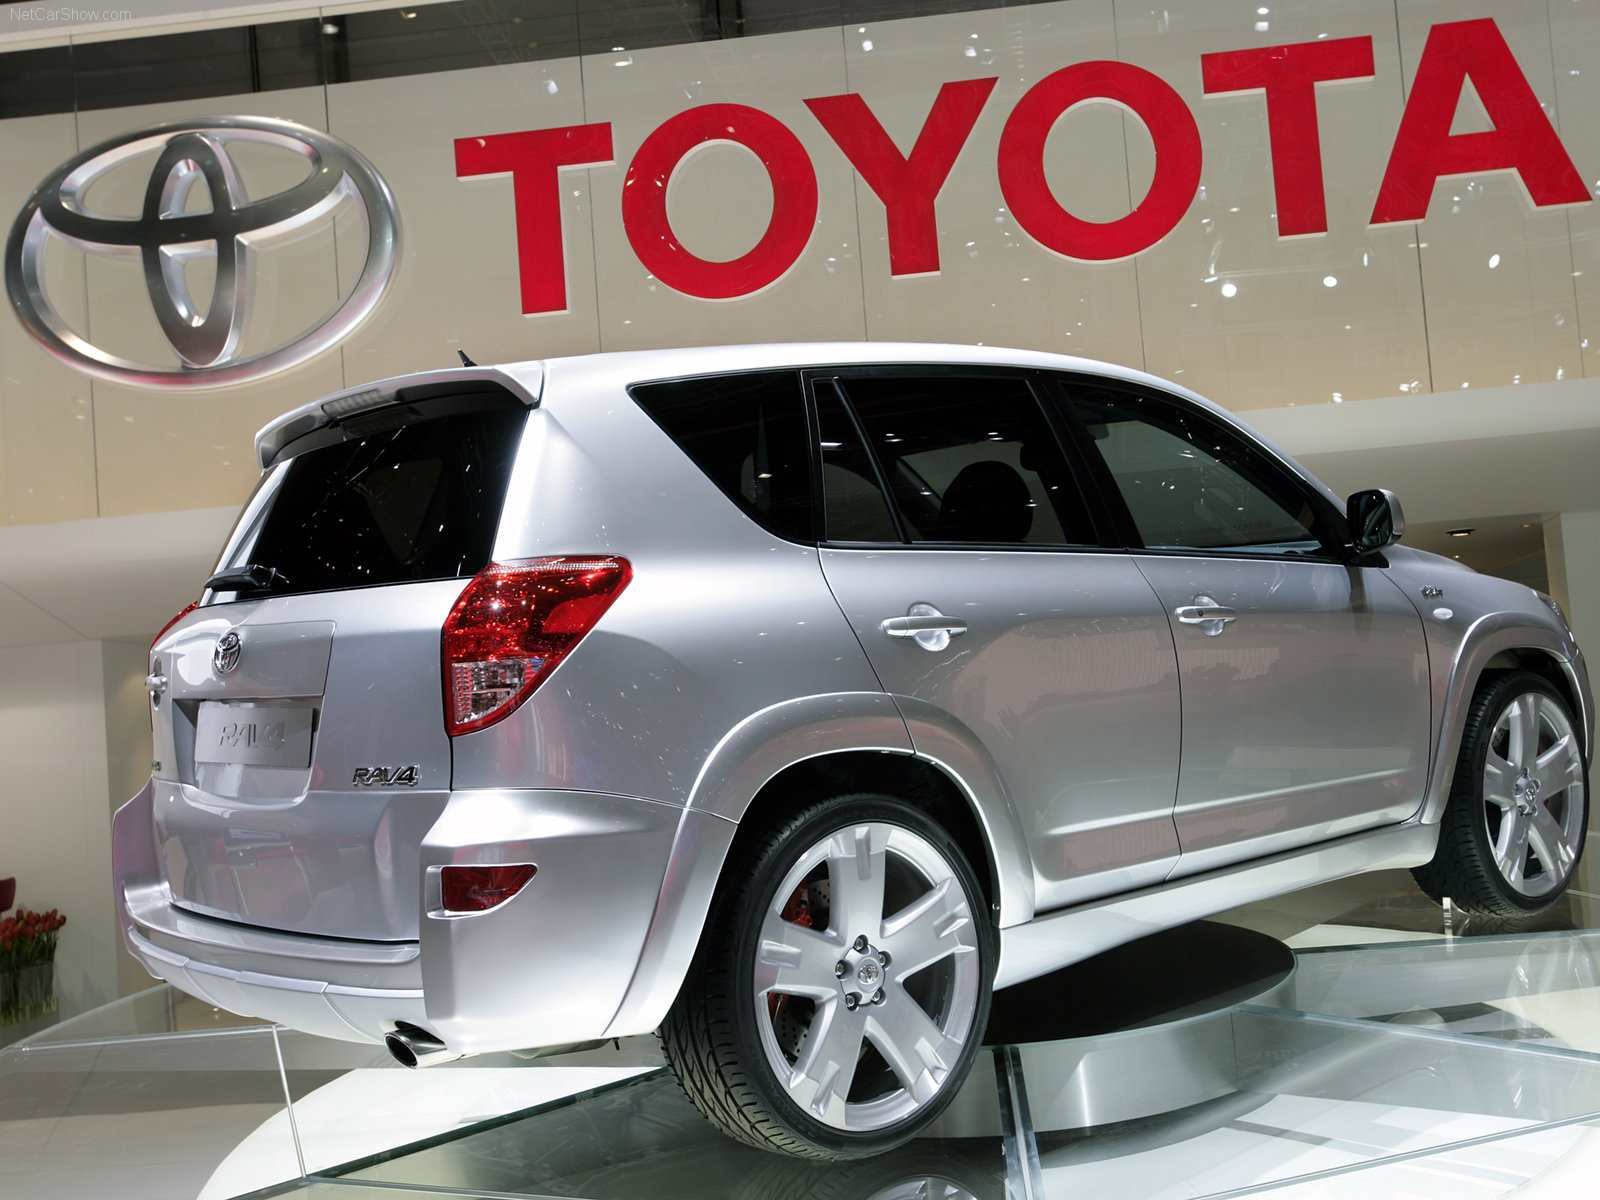 Toyota Rav 4 photo 32517